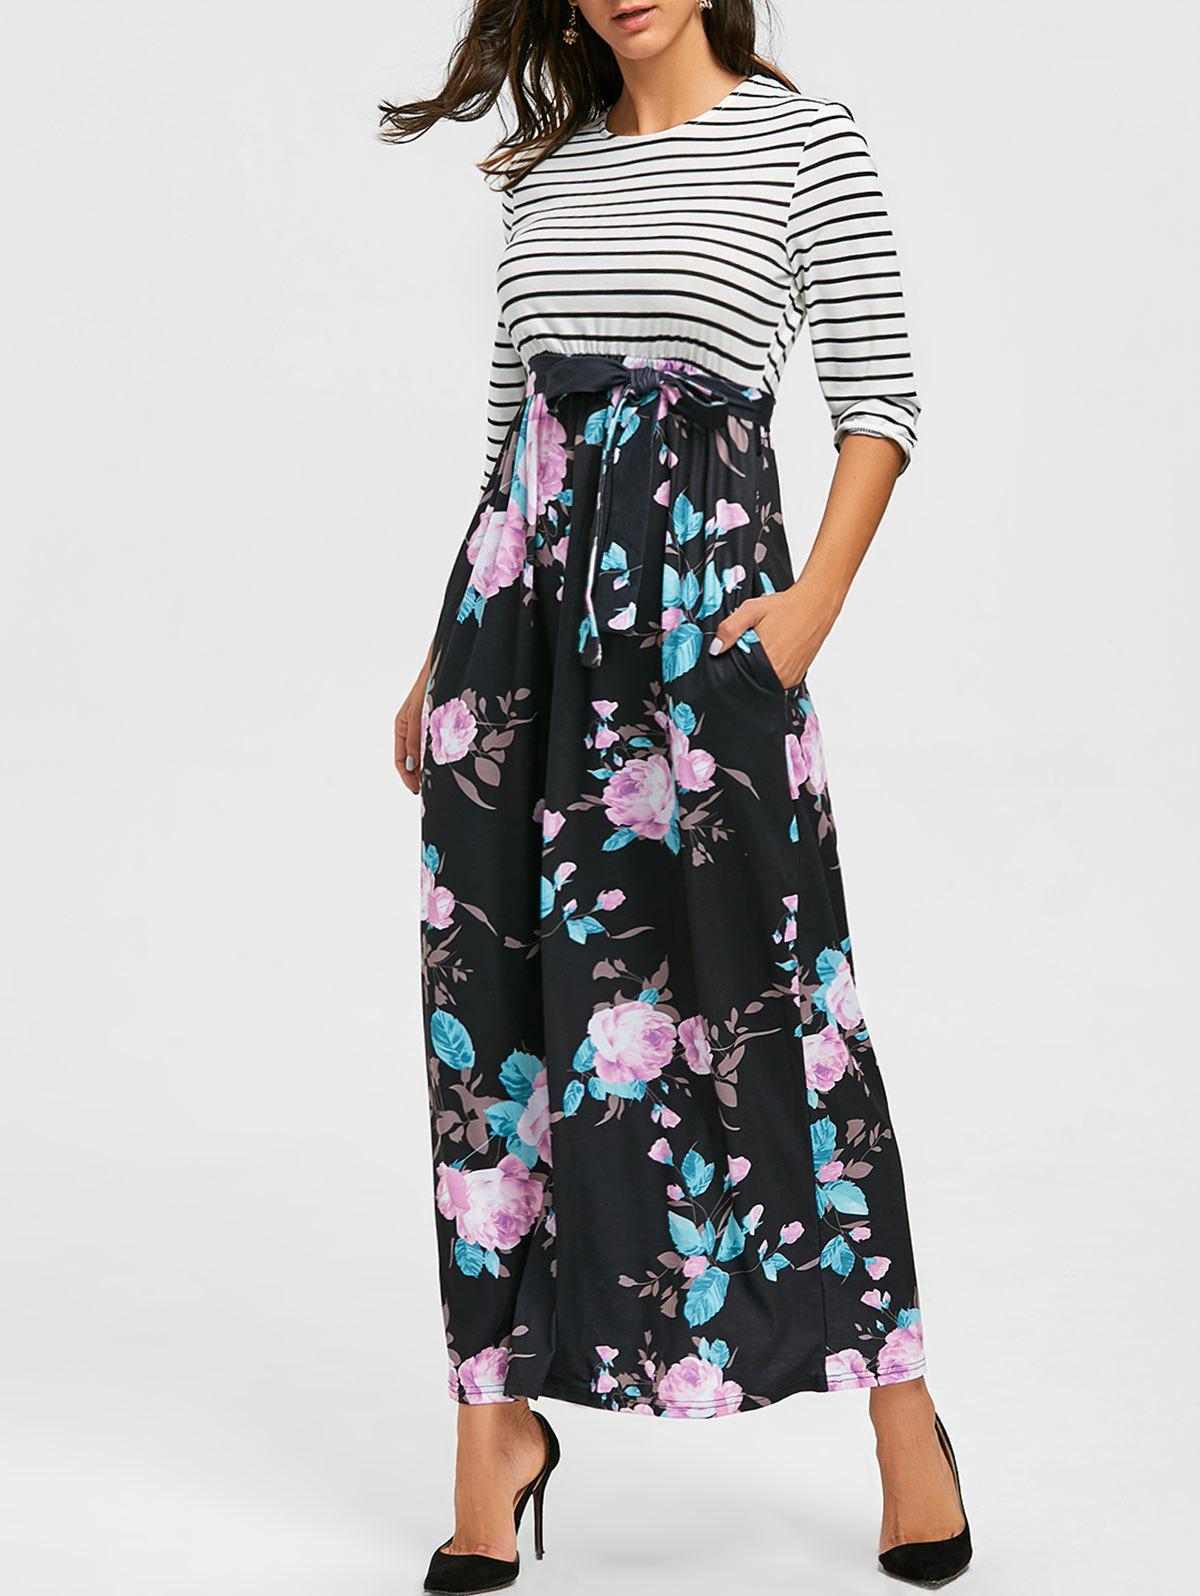 Hot Floral Print and Striped Maxi Dress